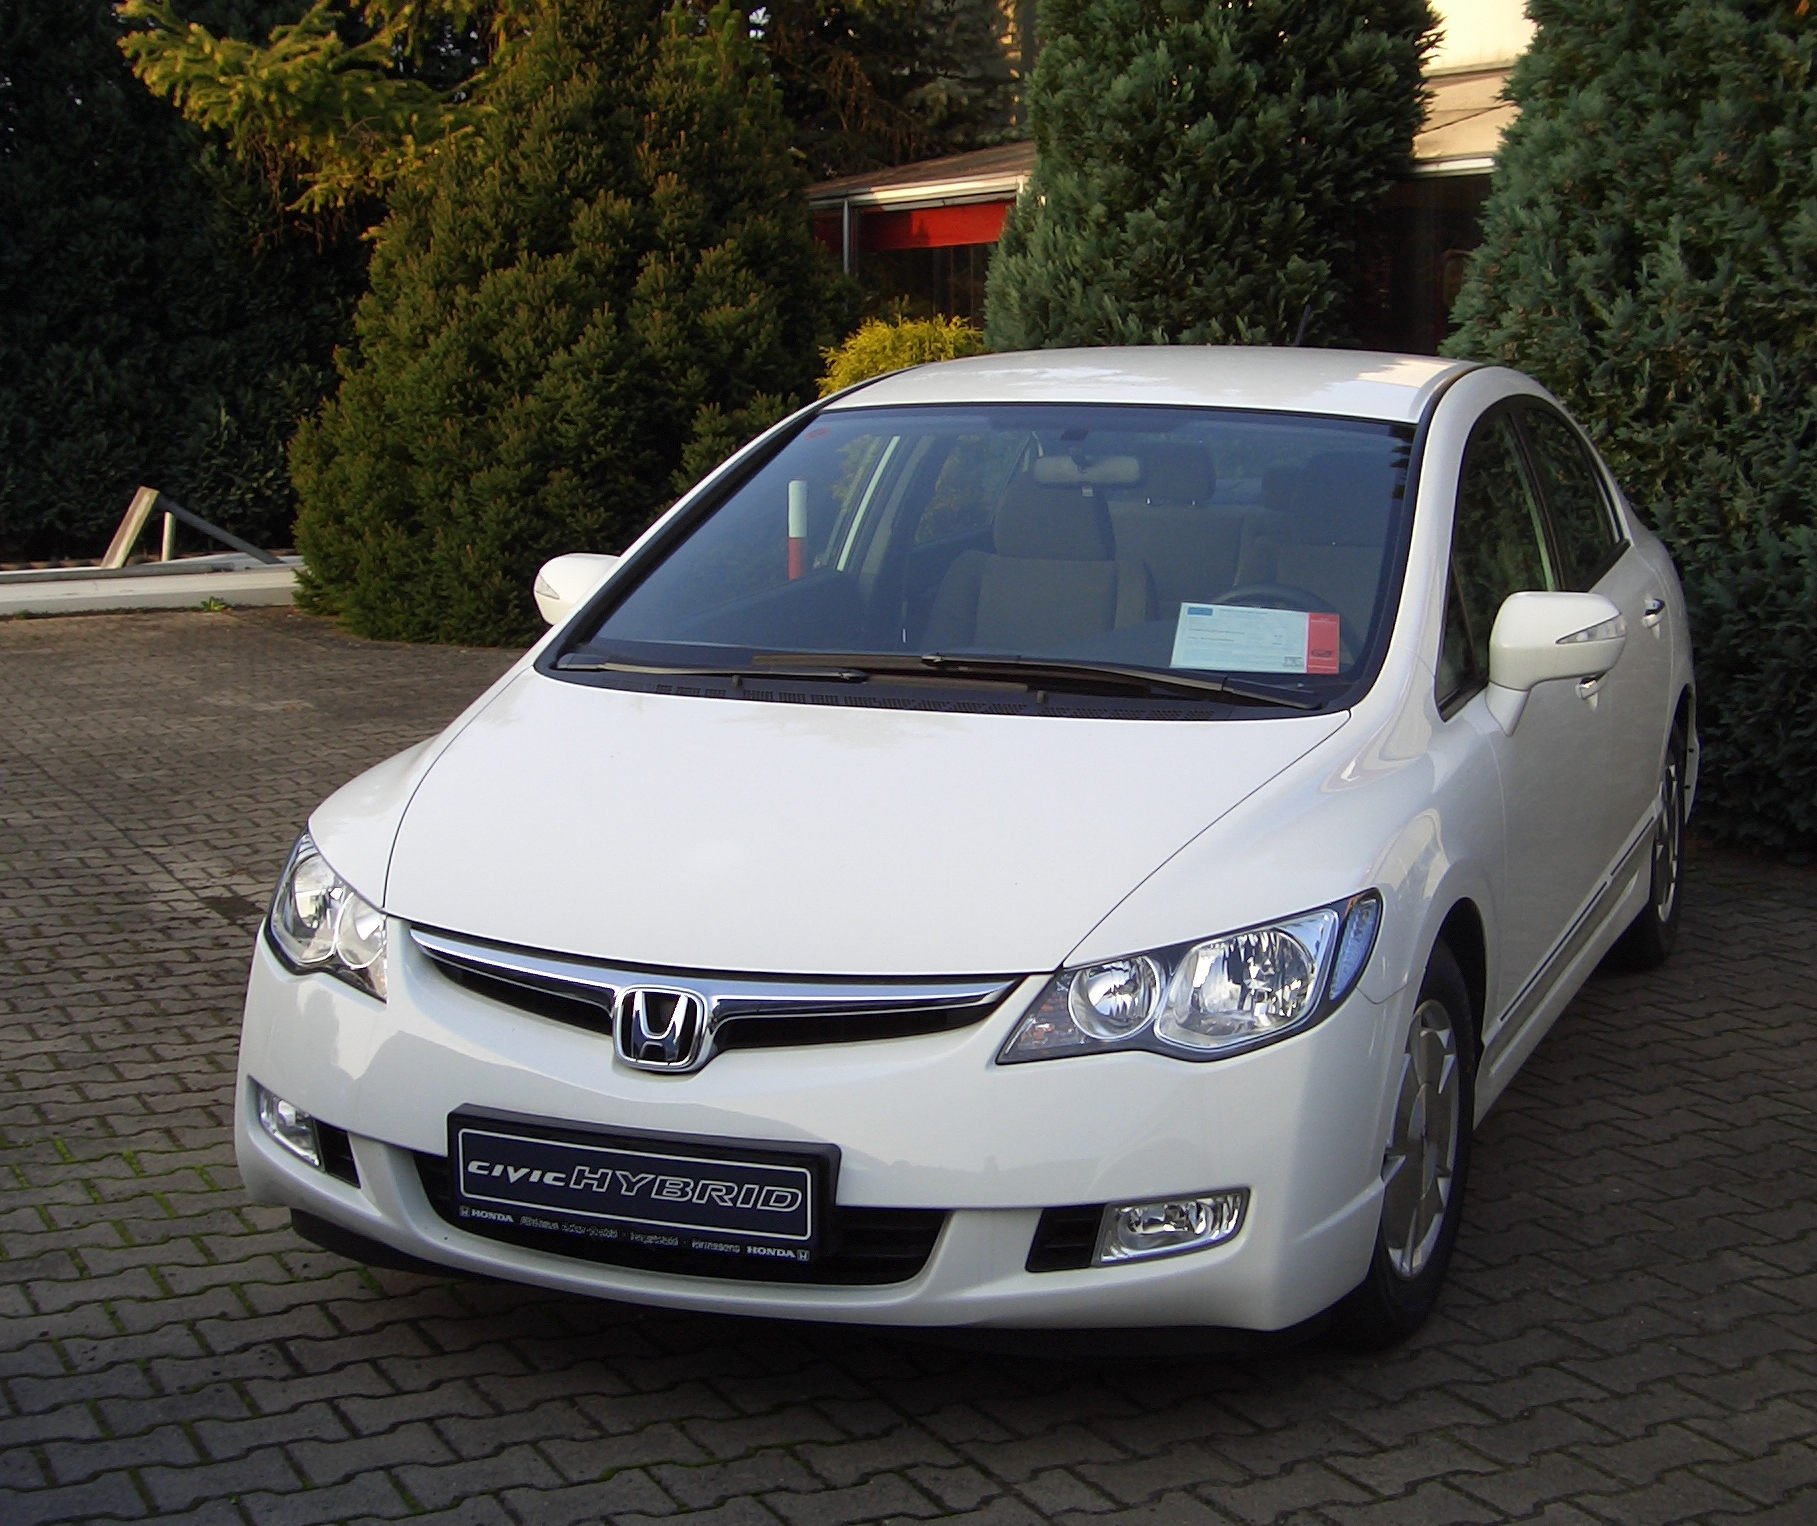 File:Honda Civic Hybrid.2007.white